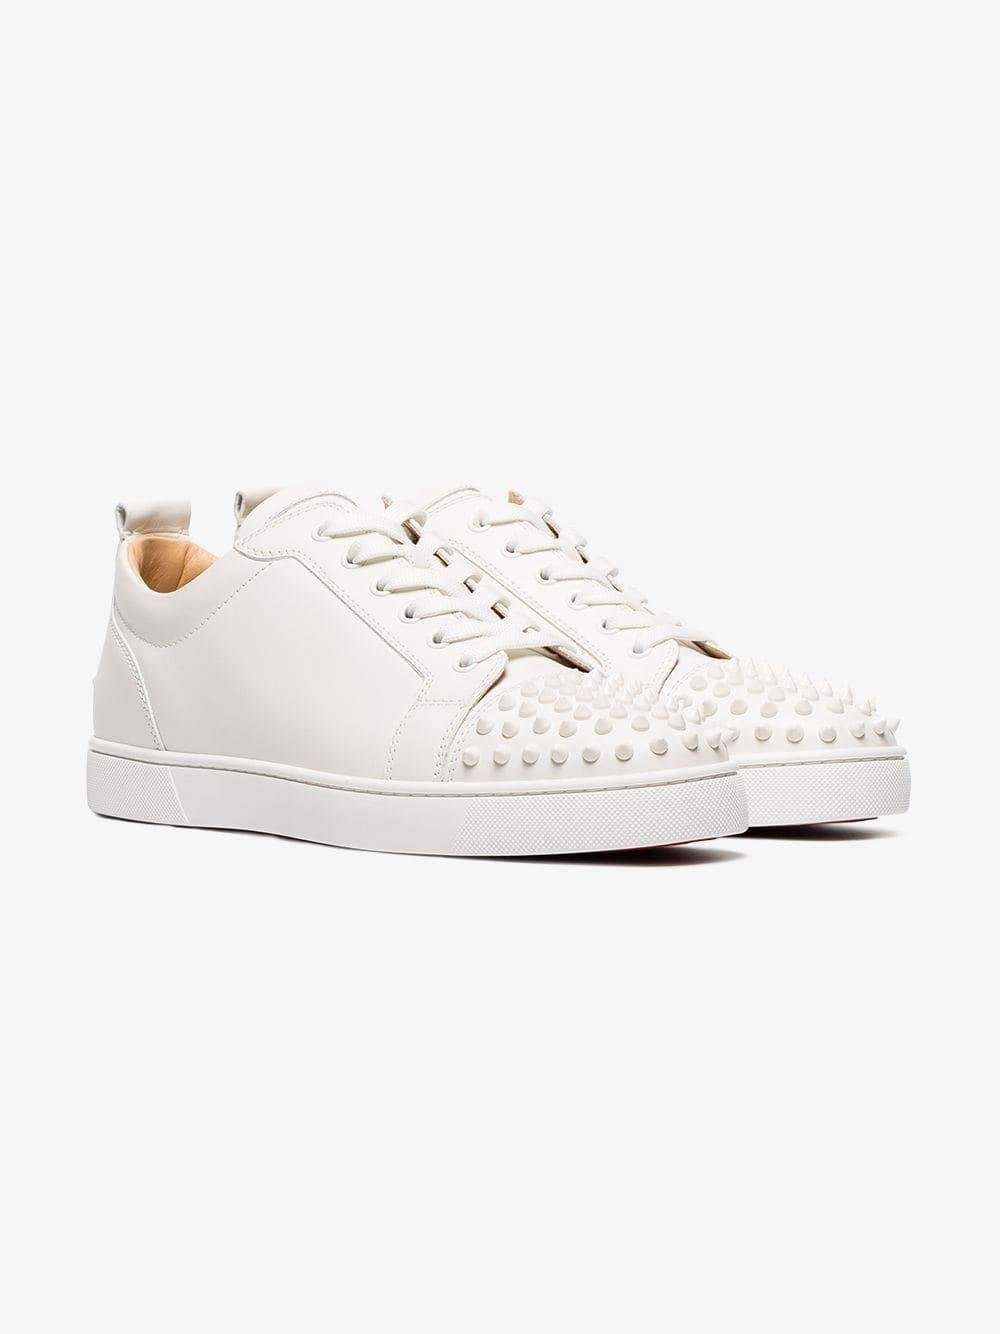 119d792def2c Christian Louboutin. Men s White Louis Junior Studded Leather Sneakers